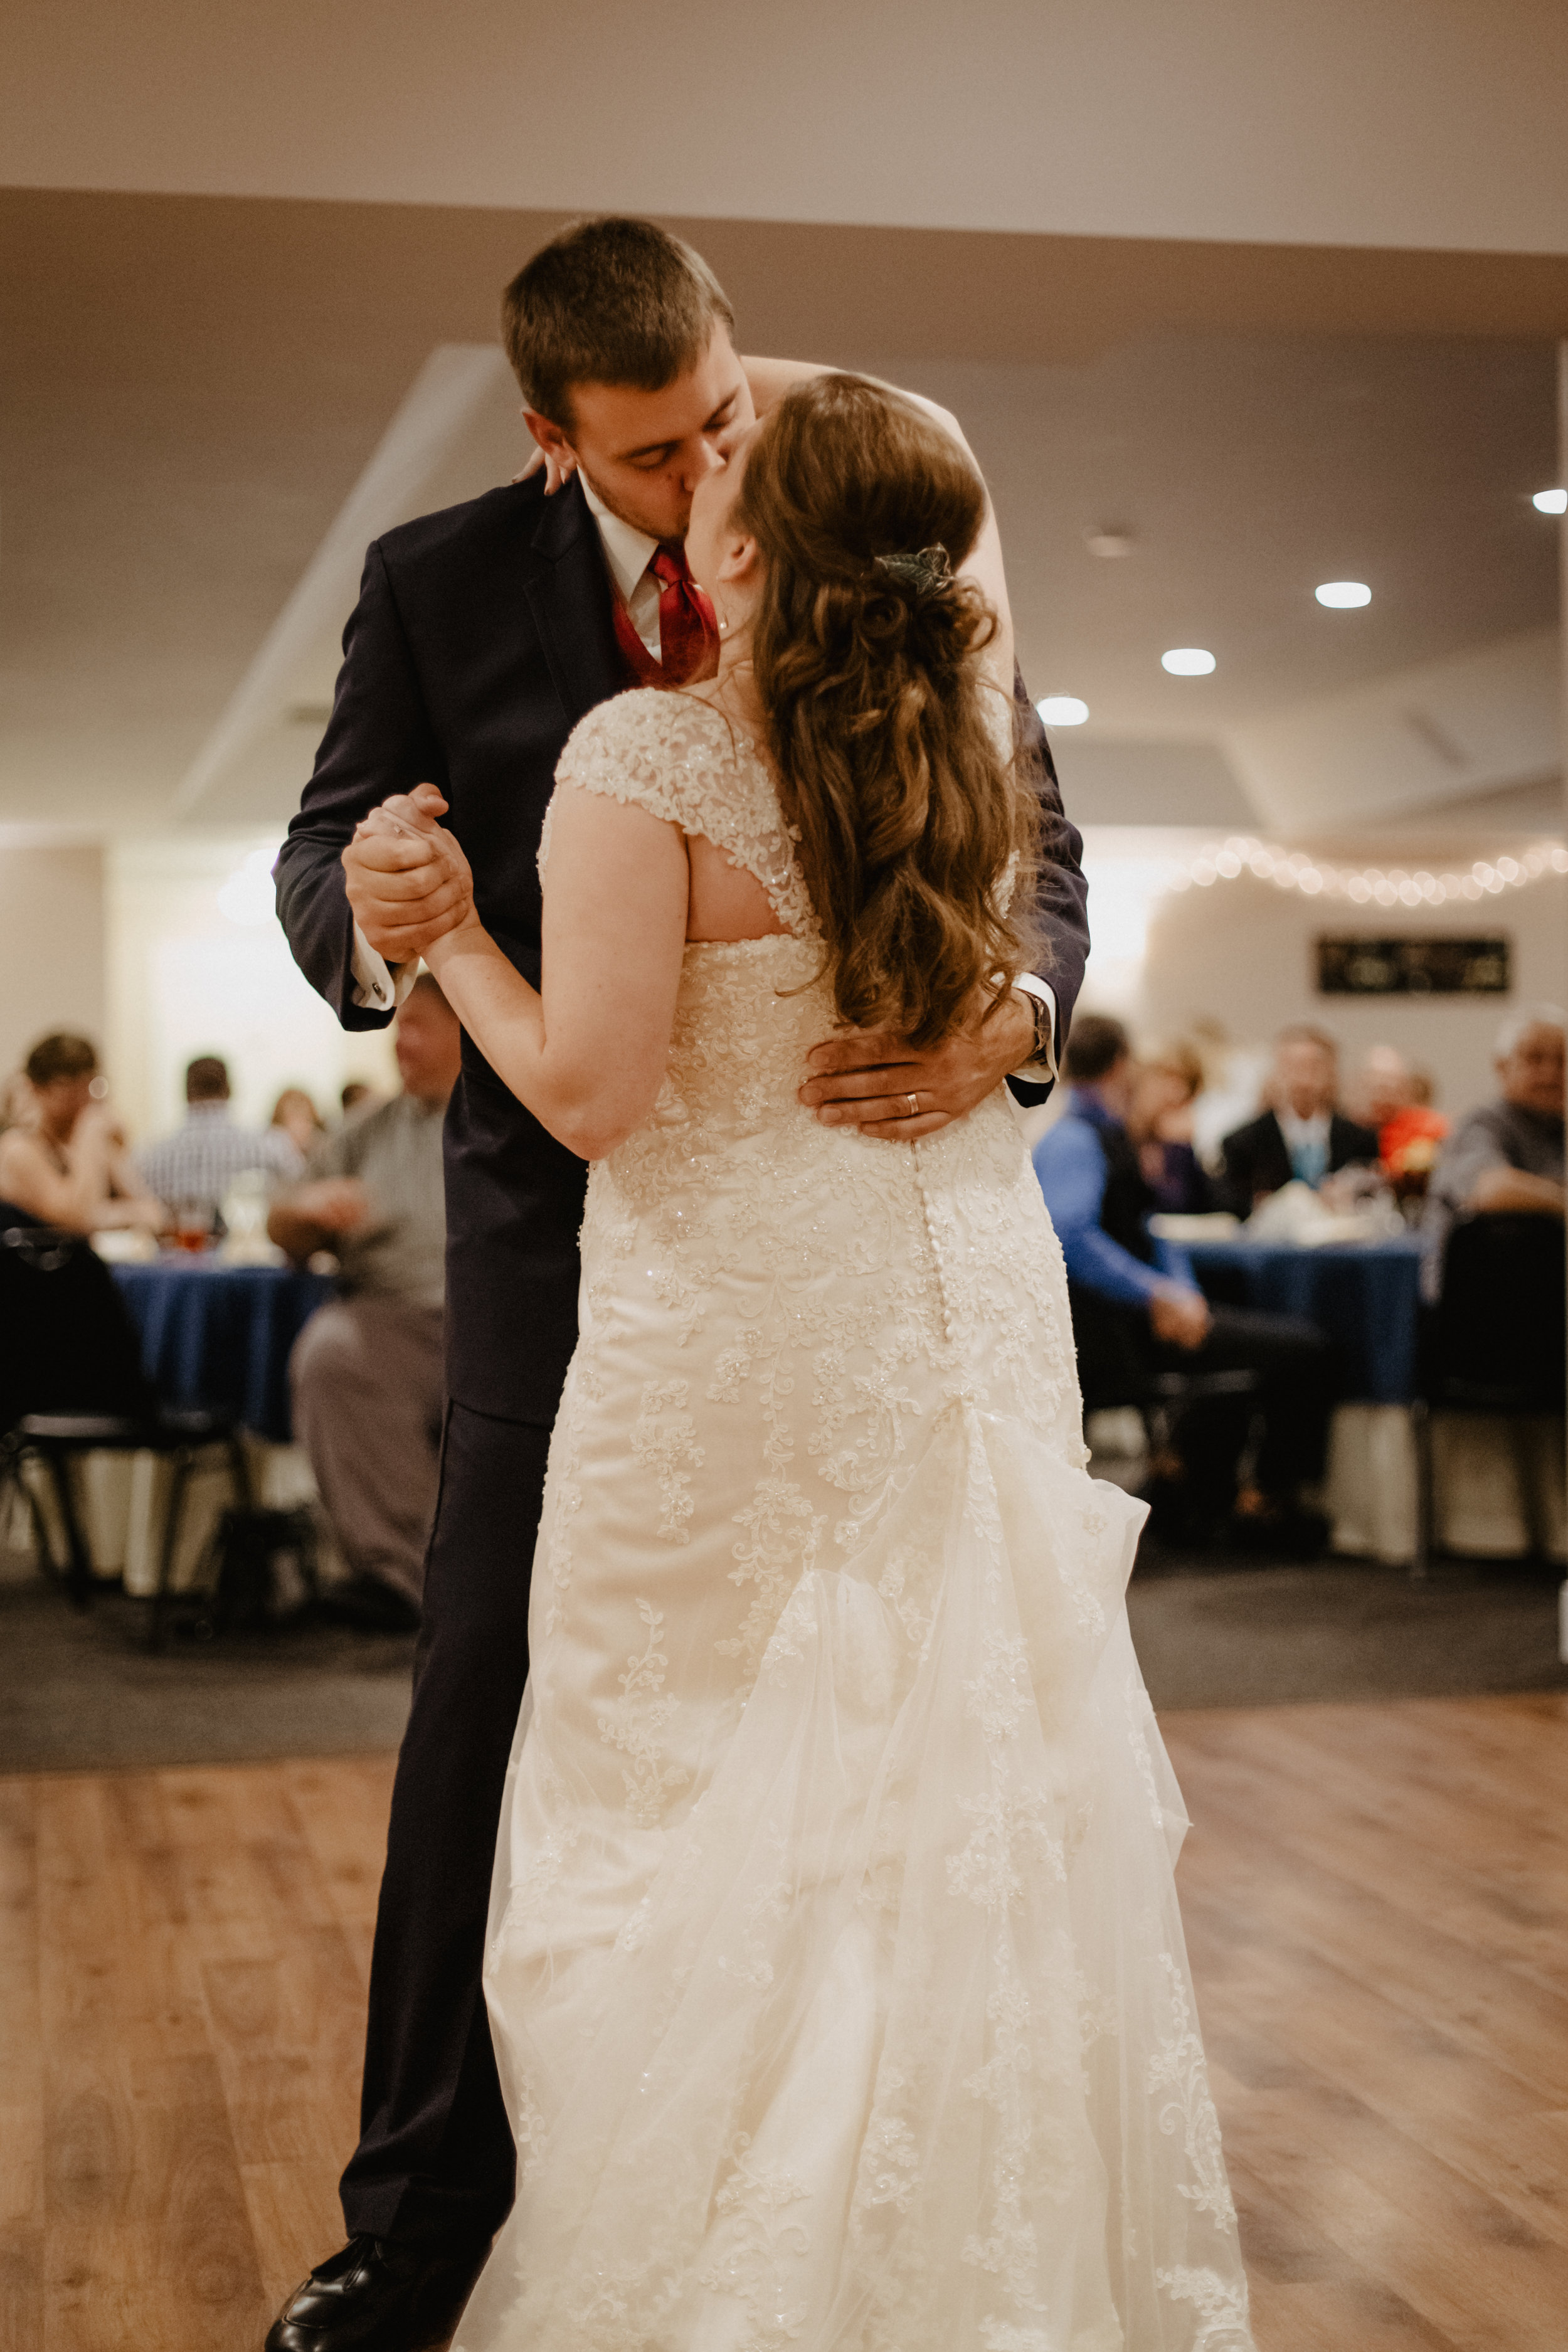 ShadowShinePictures-RachelRyan-Avery-Wedding-Photography-605.jpg